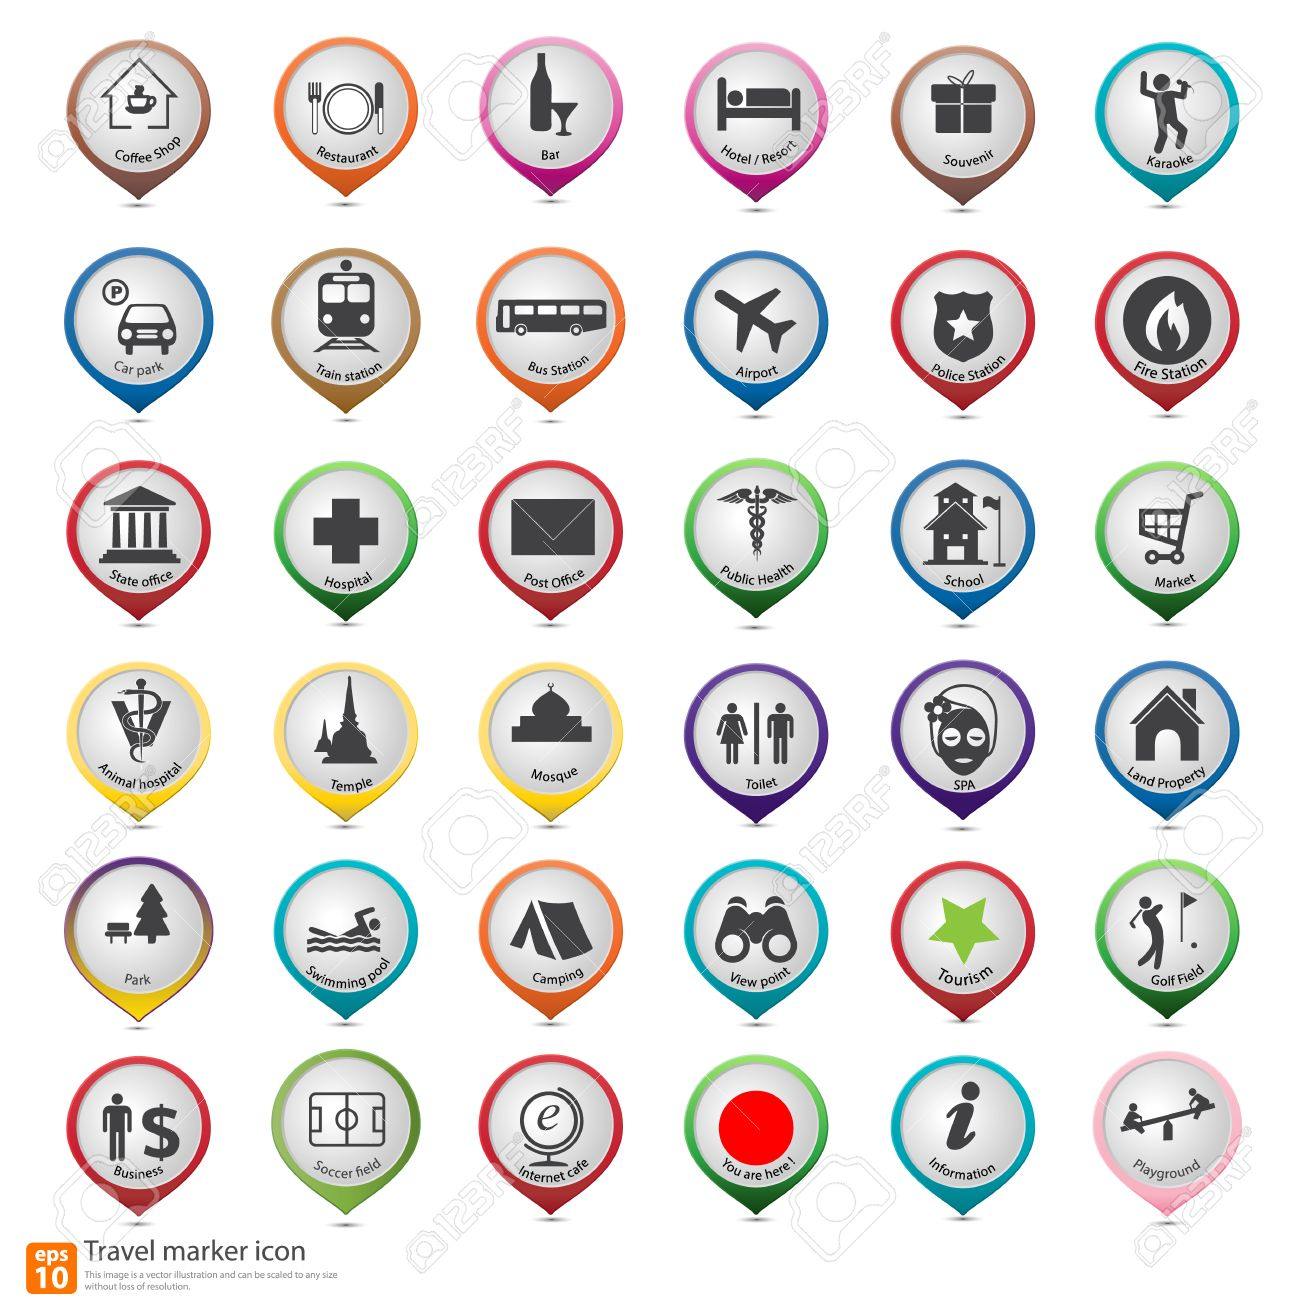 Travel Marker Map Icon Royalty Free Cliparts Vectors And – Travel Marker Map